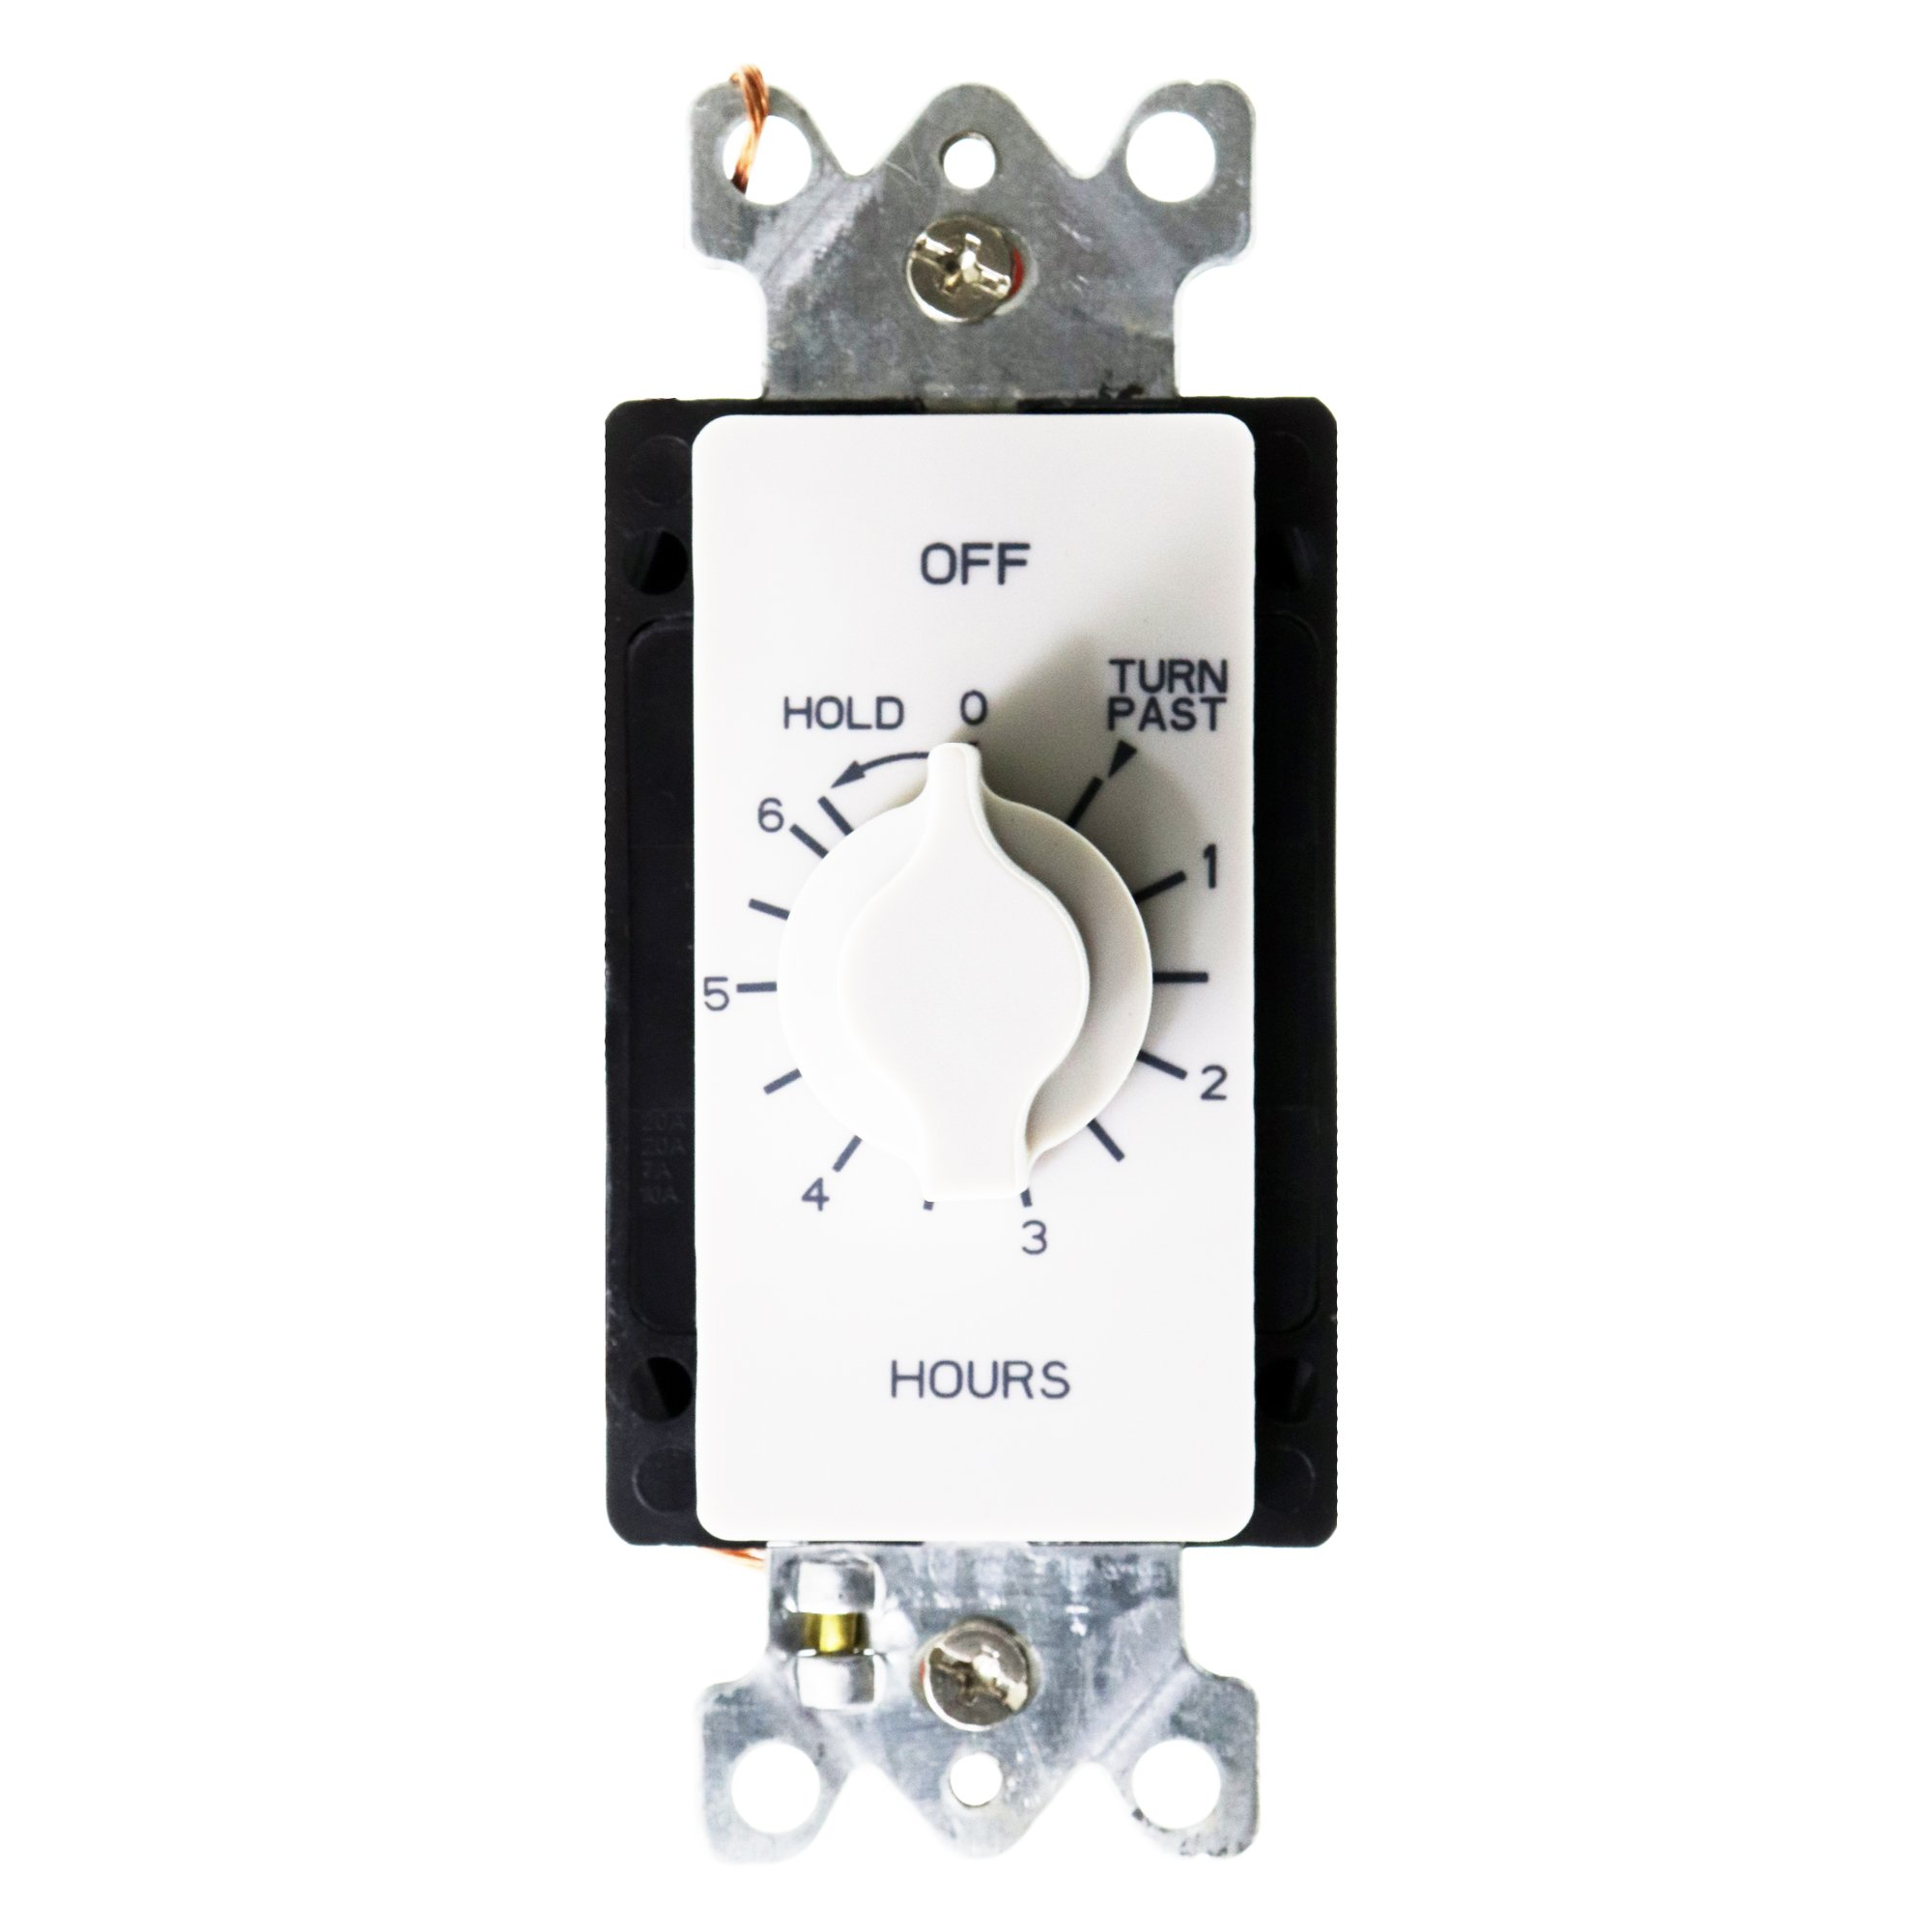 A Series Springwound Auto Off In-Wall Time Switch with Hold, 6 Hours Timer Length, White